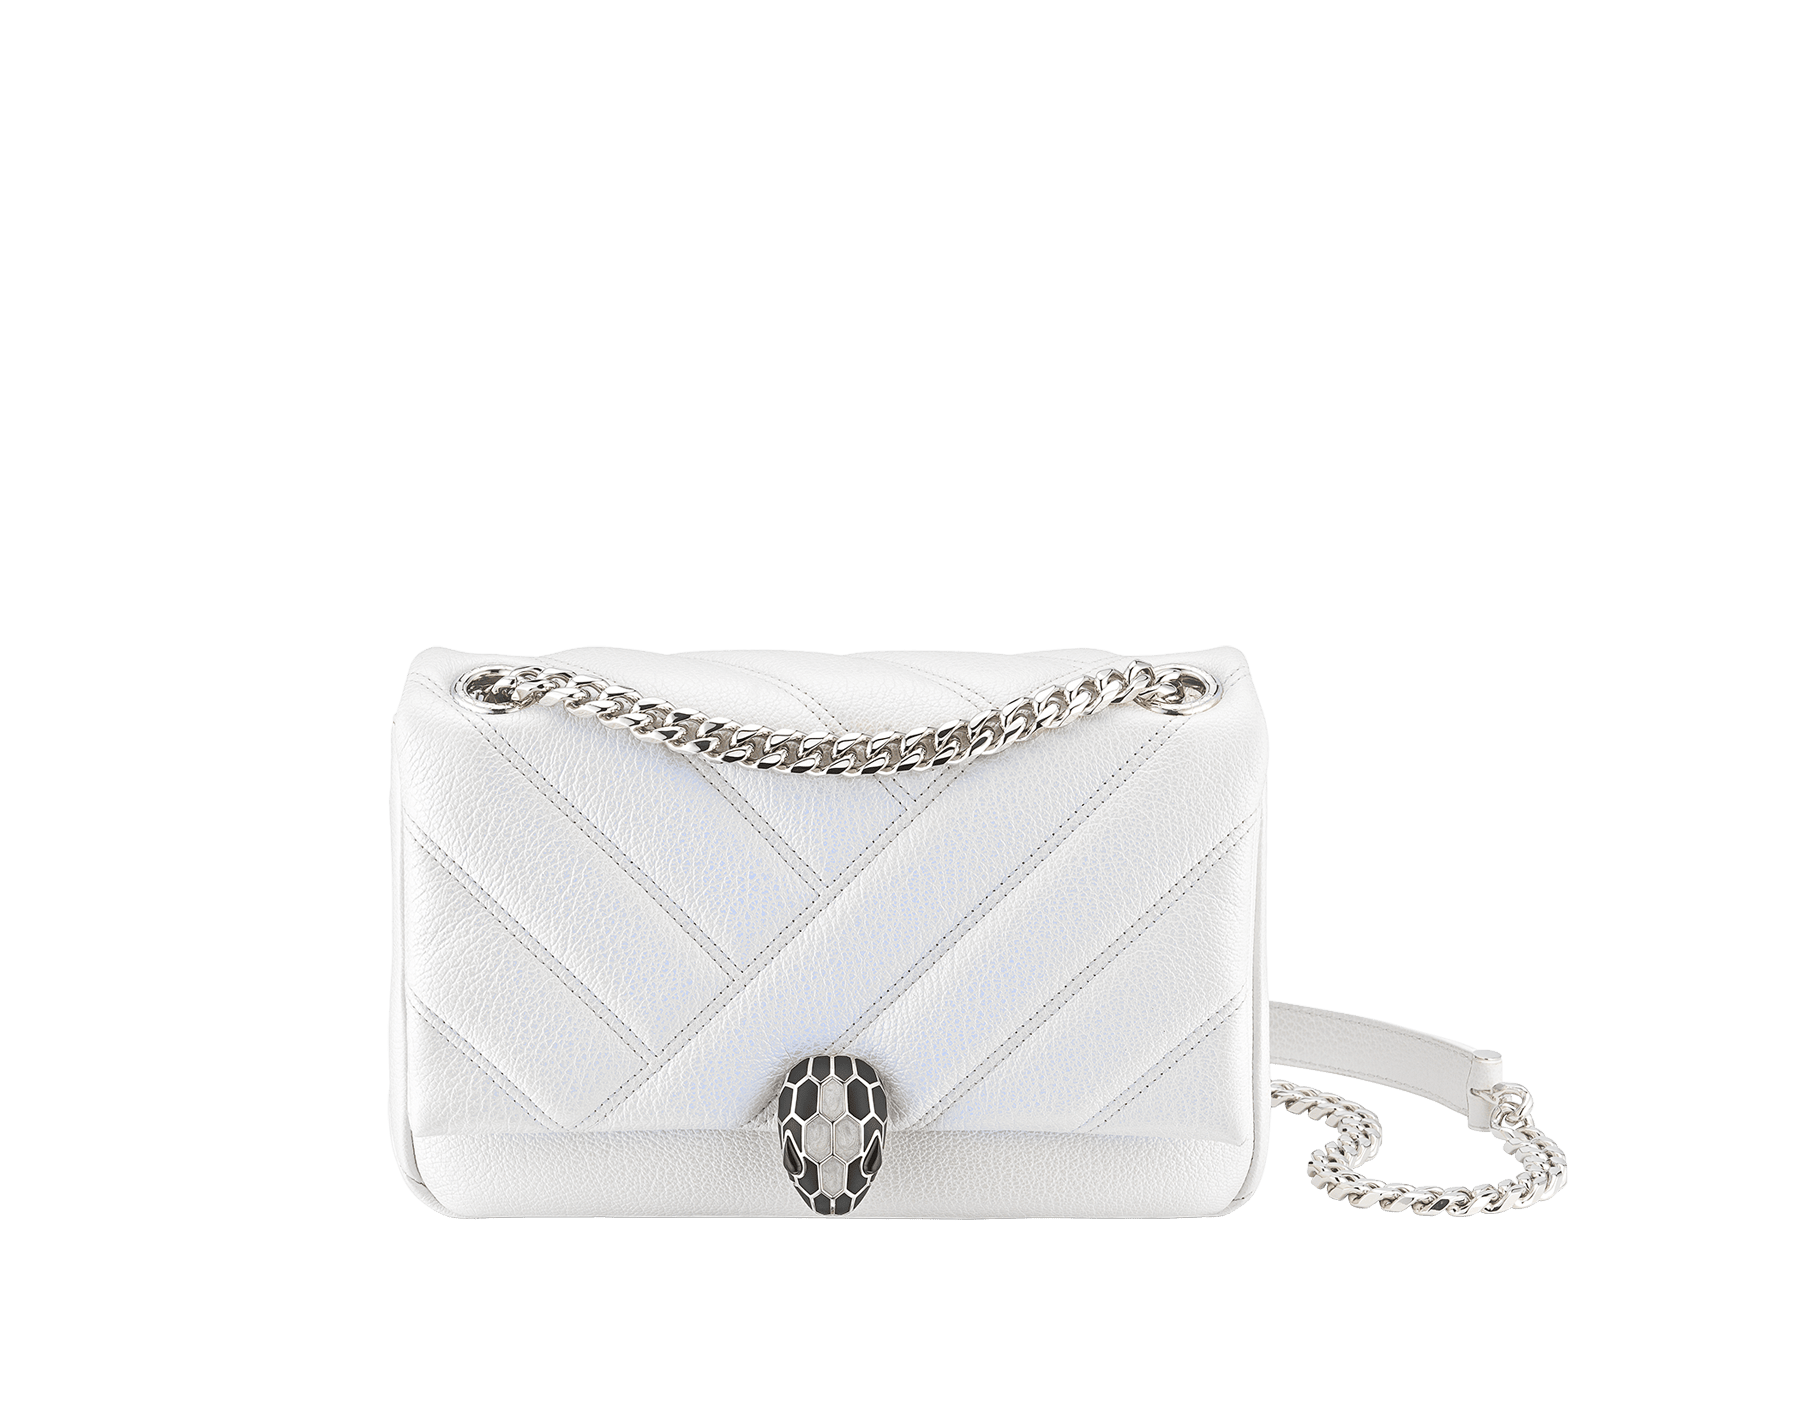 """Serpenti Cabochon"" shoulder bag in soft quilted white agate goatskin with a pearled, iridescent effect and a graphic motif. Brass palladium plated tempting snake head closure in matte black and shiny white enamel and black onyx eyes. 290236 image 1"